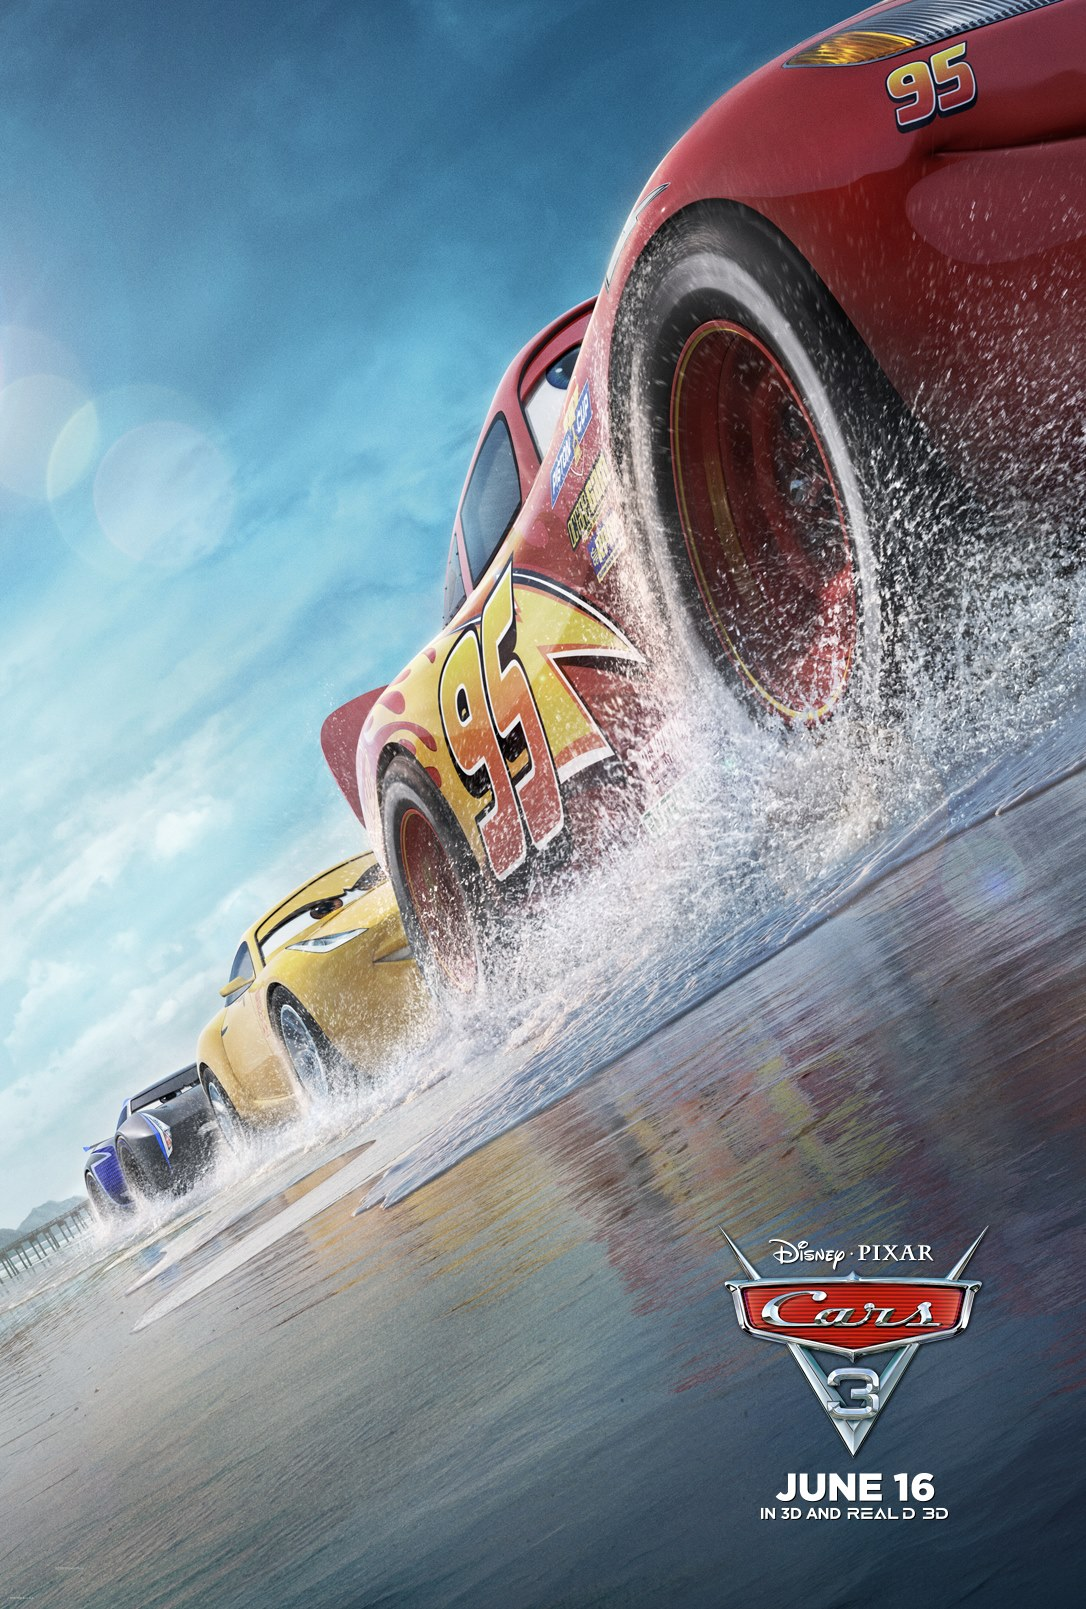 Third 'Cars' installment disappoints